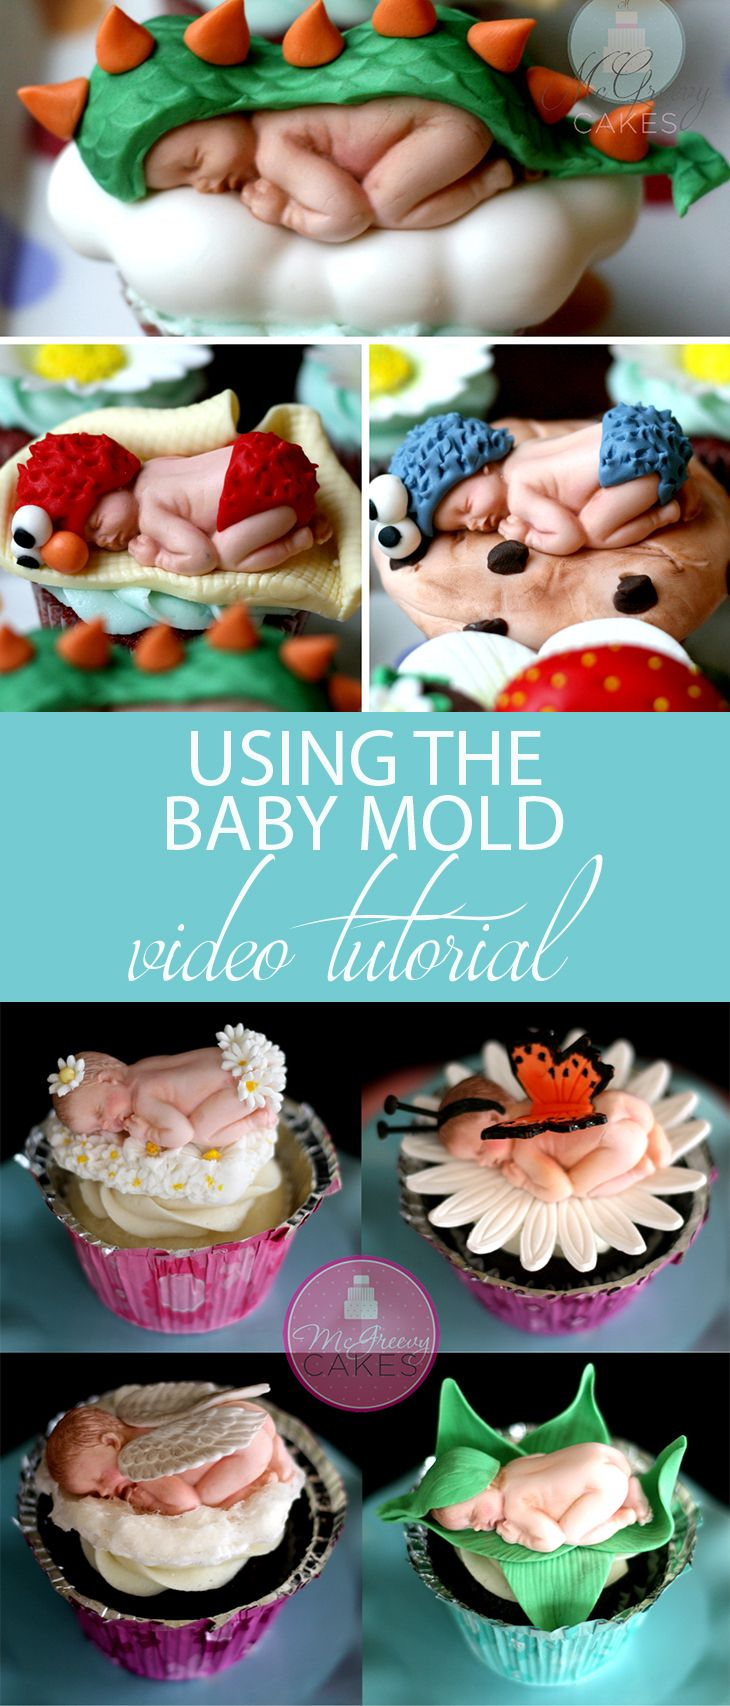 Using the baby mold: a video tutorial!                                                                                                                                                      More